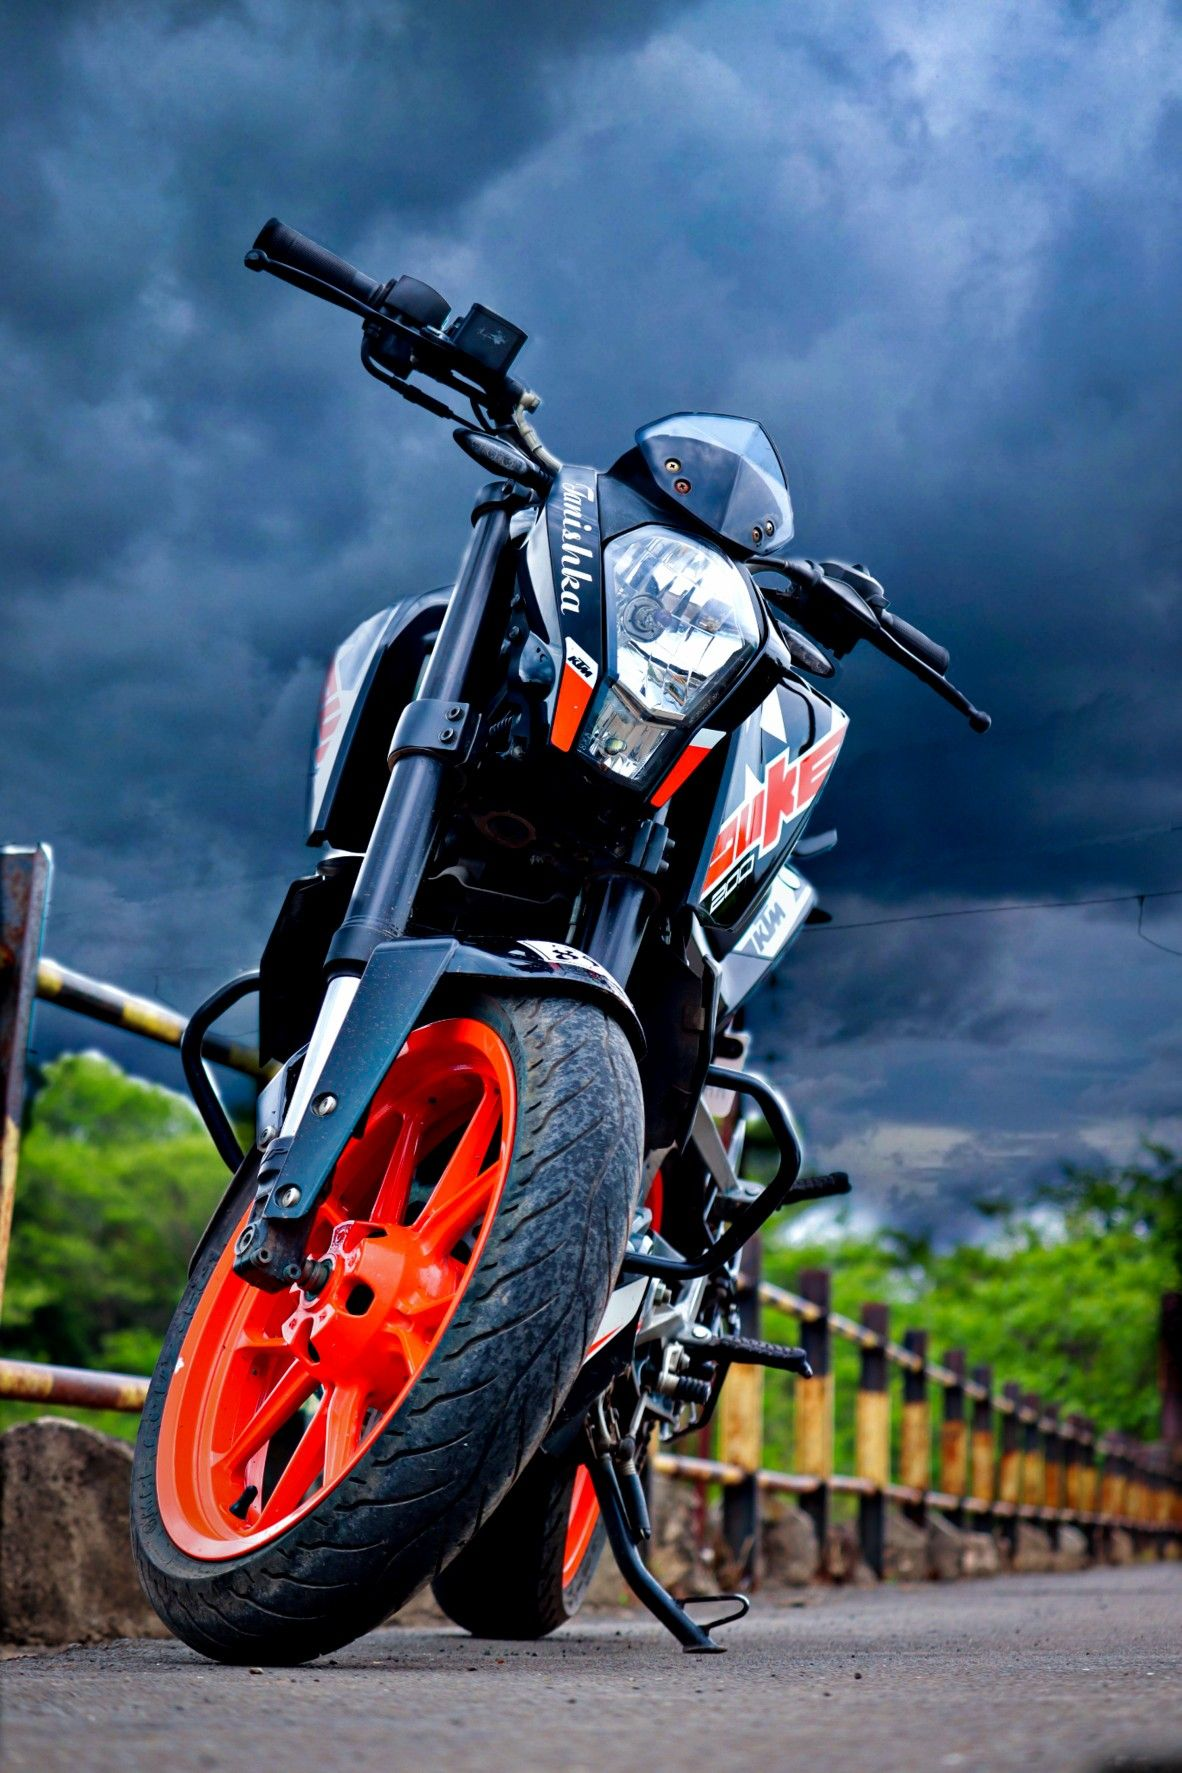 Download Duke200 Wallpaper By Crazyhas 72 Free On Zedge Now Browse Millions Of Popular Bike Wallpapers And Ringtones On Z Duke Bike Ktm Duke Ktm Duke 200